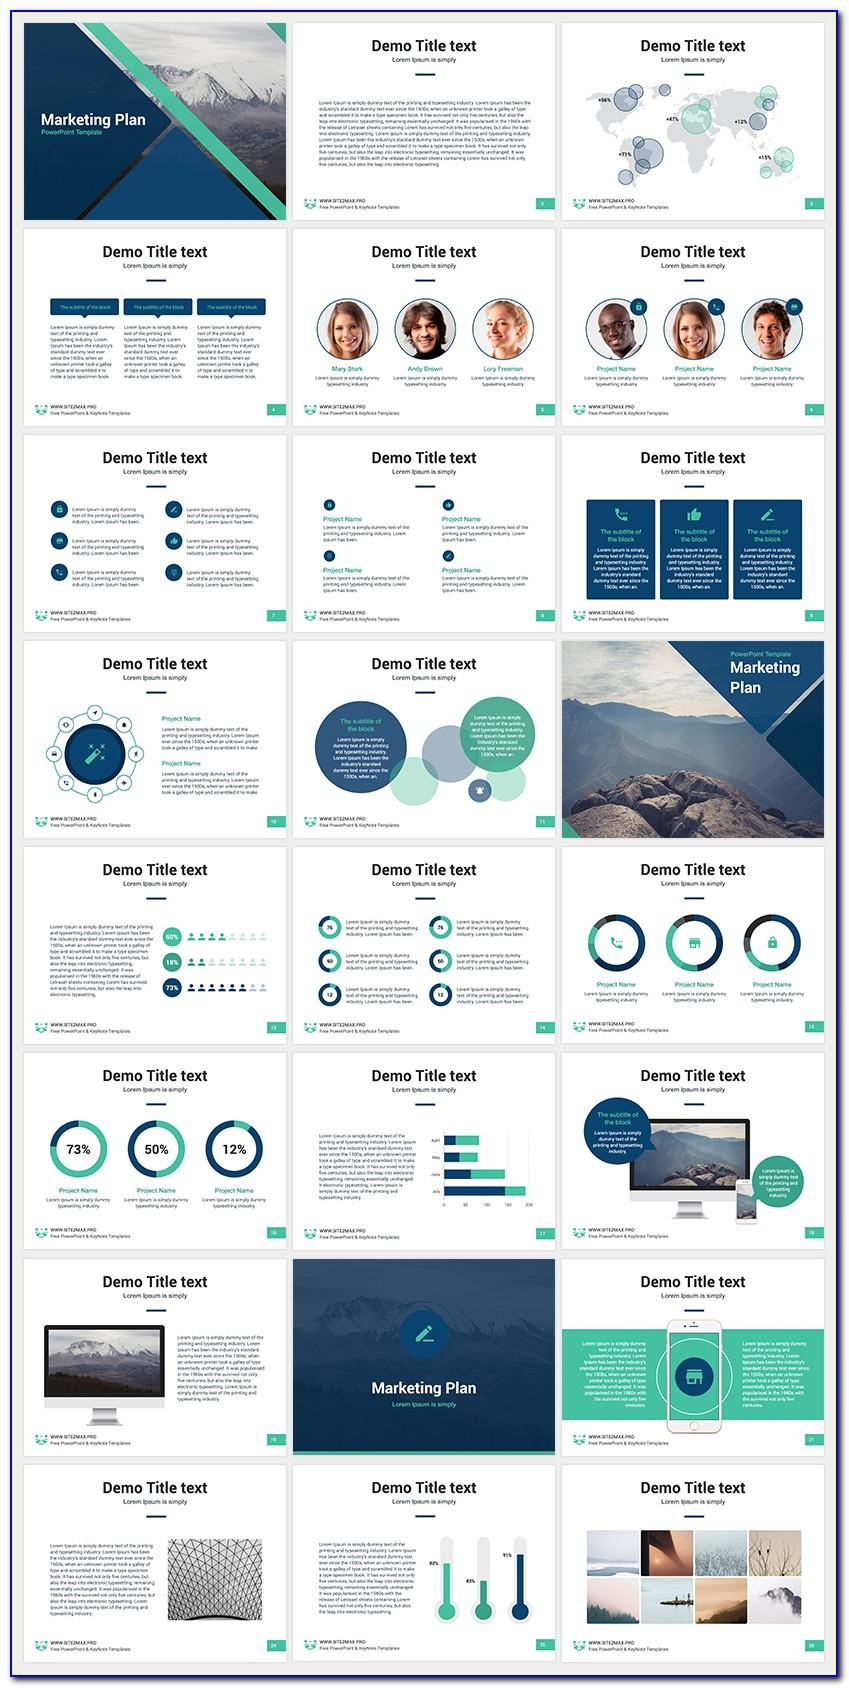 Marketing Plan Ppt Template Free Download